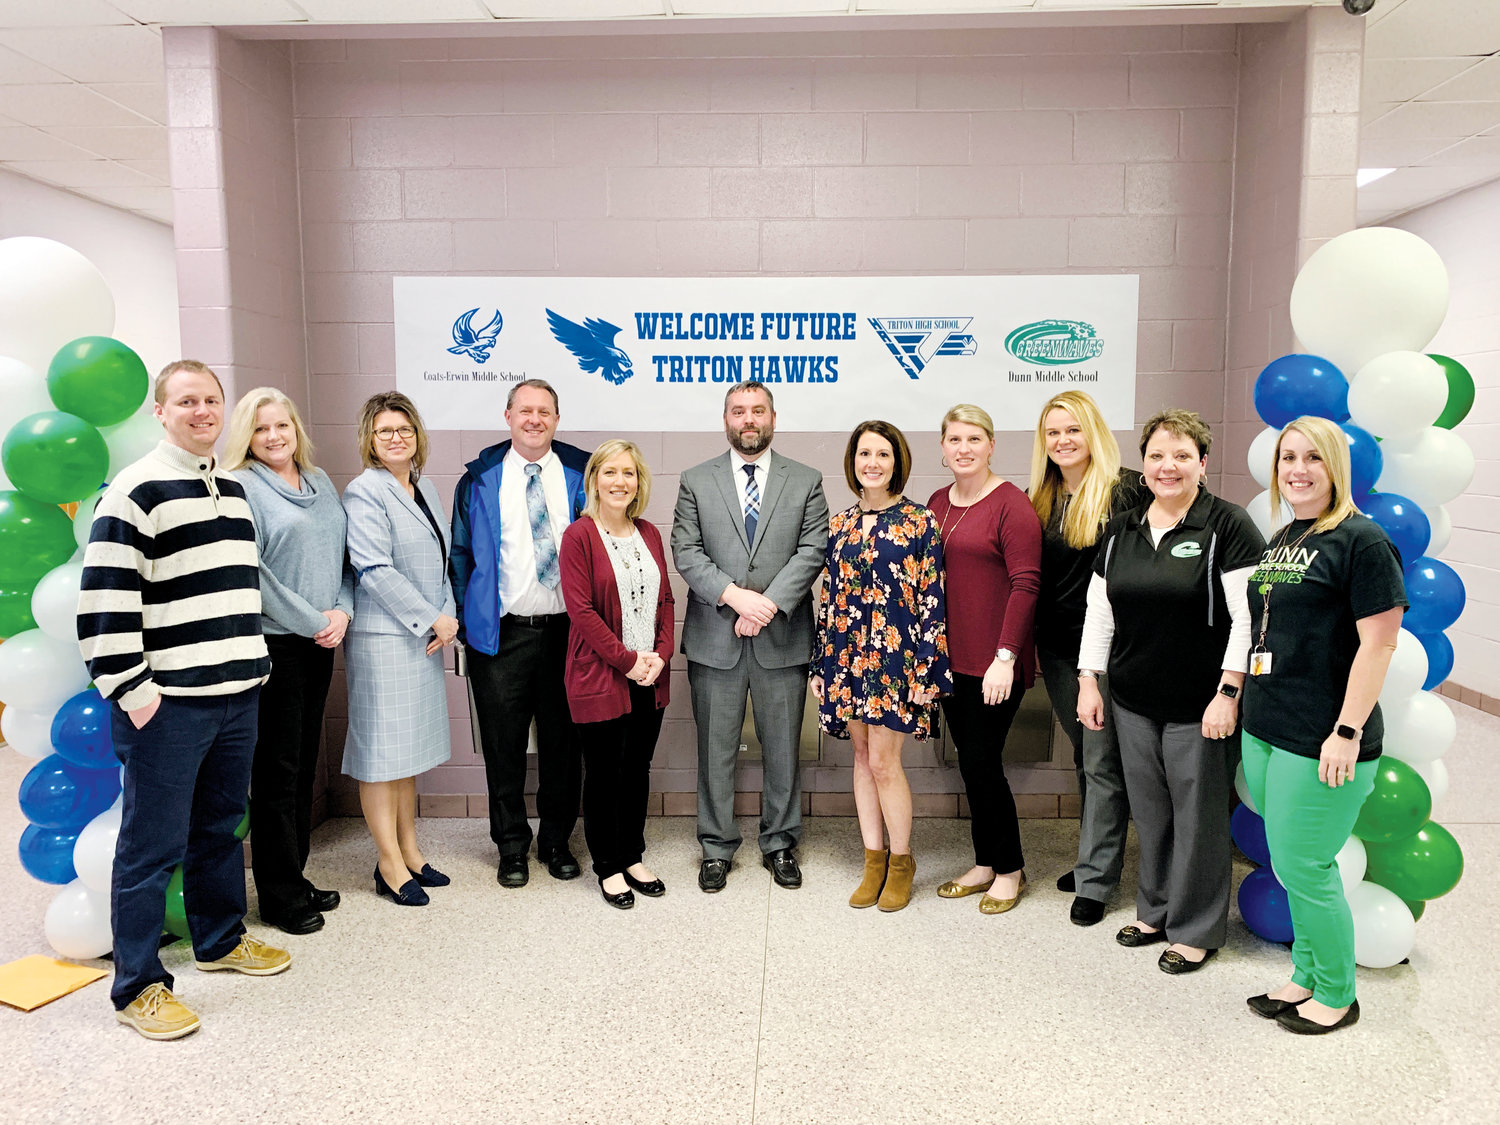 Pictured at the first Future Hawks Information Night are, from left, Triton High School counselor Jared Collier; Coats-Erwin Middle School counselor Lou Ann Jones; CEMS Principal Sharon Johnson; CEMS Assistant Principal Tre Perry; THS counselor Paula Parker; THS Principal Ryan McNeill; THS counselors Ashlyn Thompson and Morgan Colmenero; Dunn Midd School Assistant Principal Megan West; DMS Principal Dr. Janet Doffermyre; and DMS counselor Leslie Weaver.